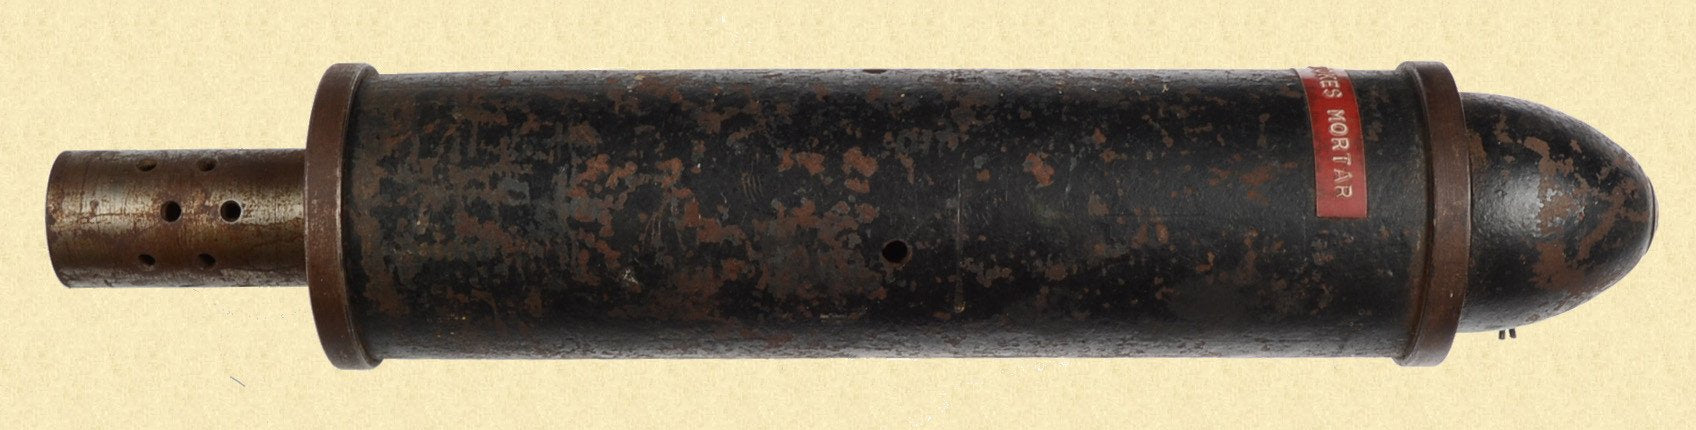 BRITISH STOKES MORTAR ROUND